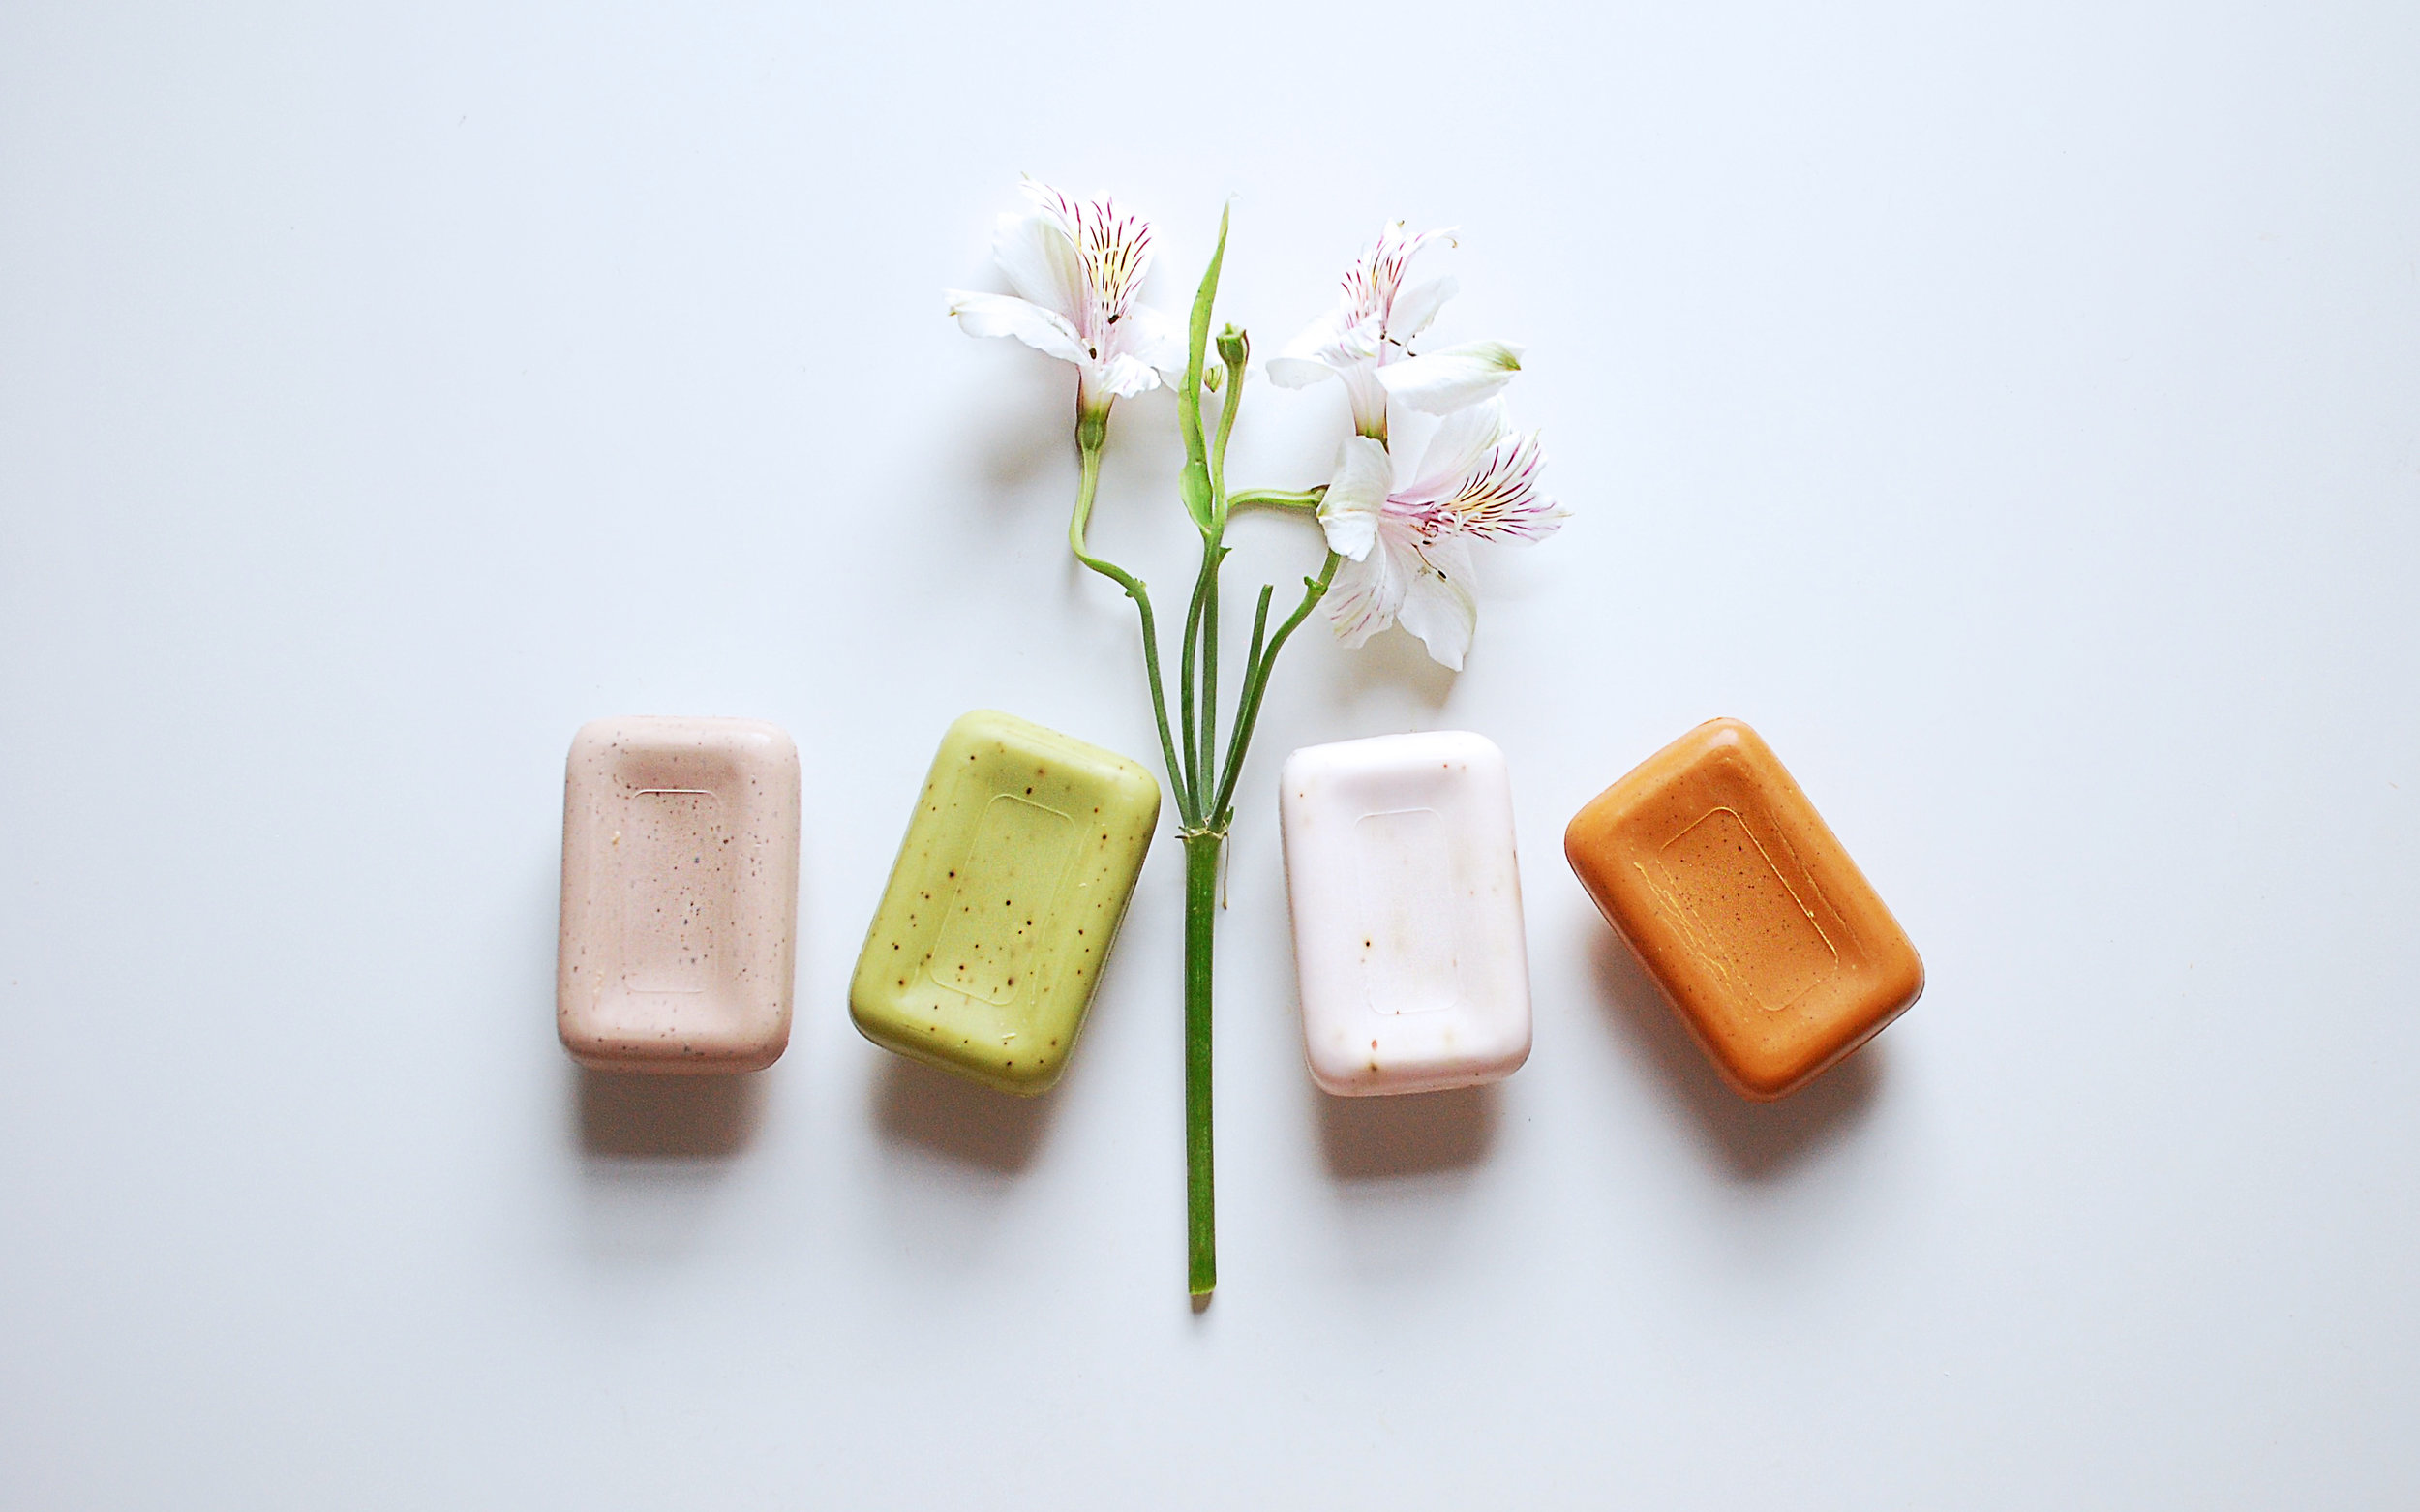 toxic ingredients to avoid in soap